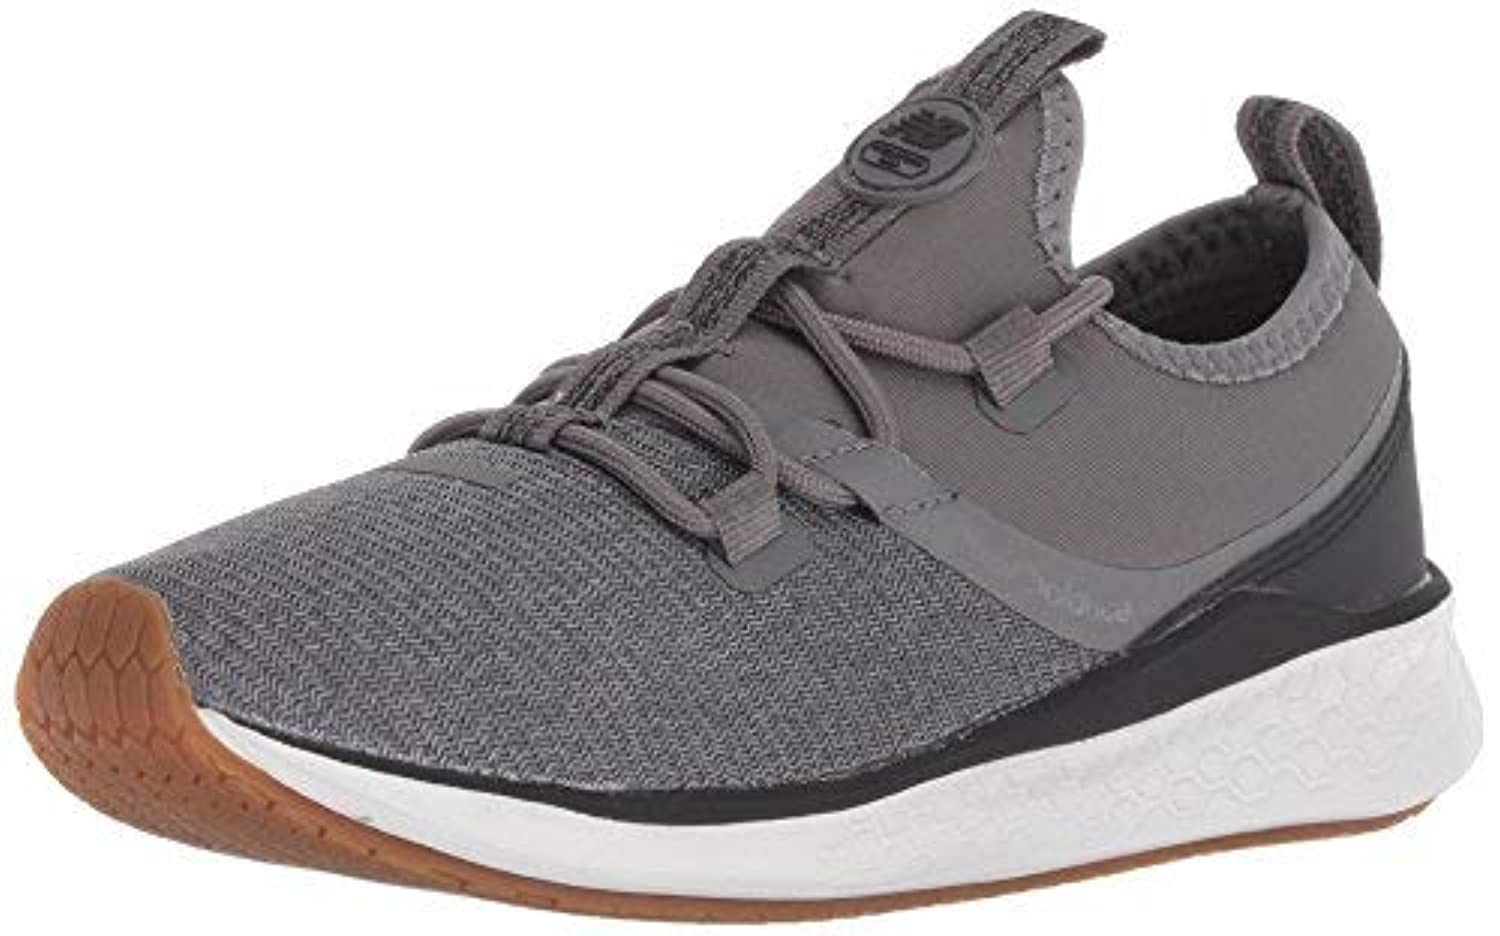 New Balance Boys' Lazr V1 Fresh Foam Running Shoe Castlerock 4.5 W US Big Kid [並行輸入品]